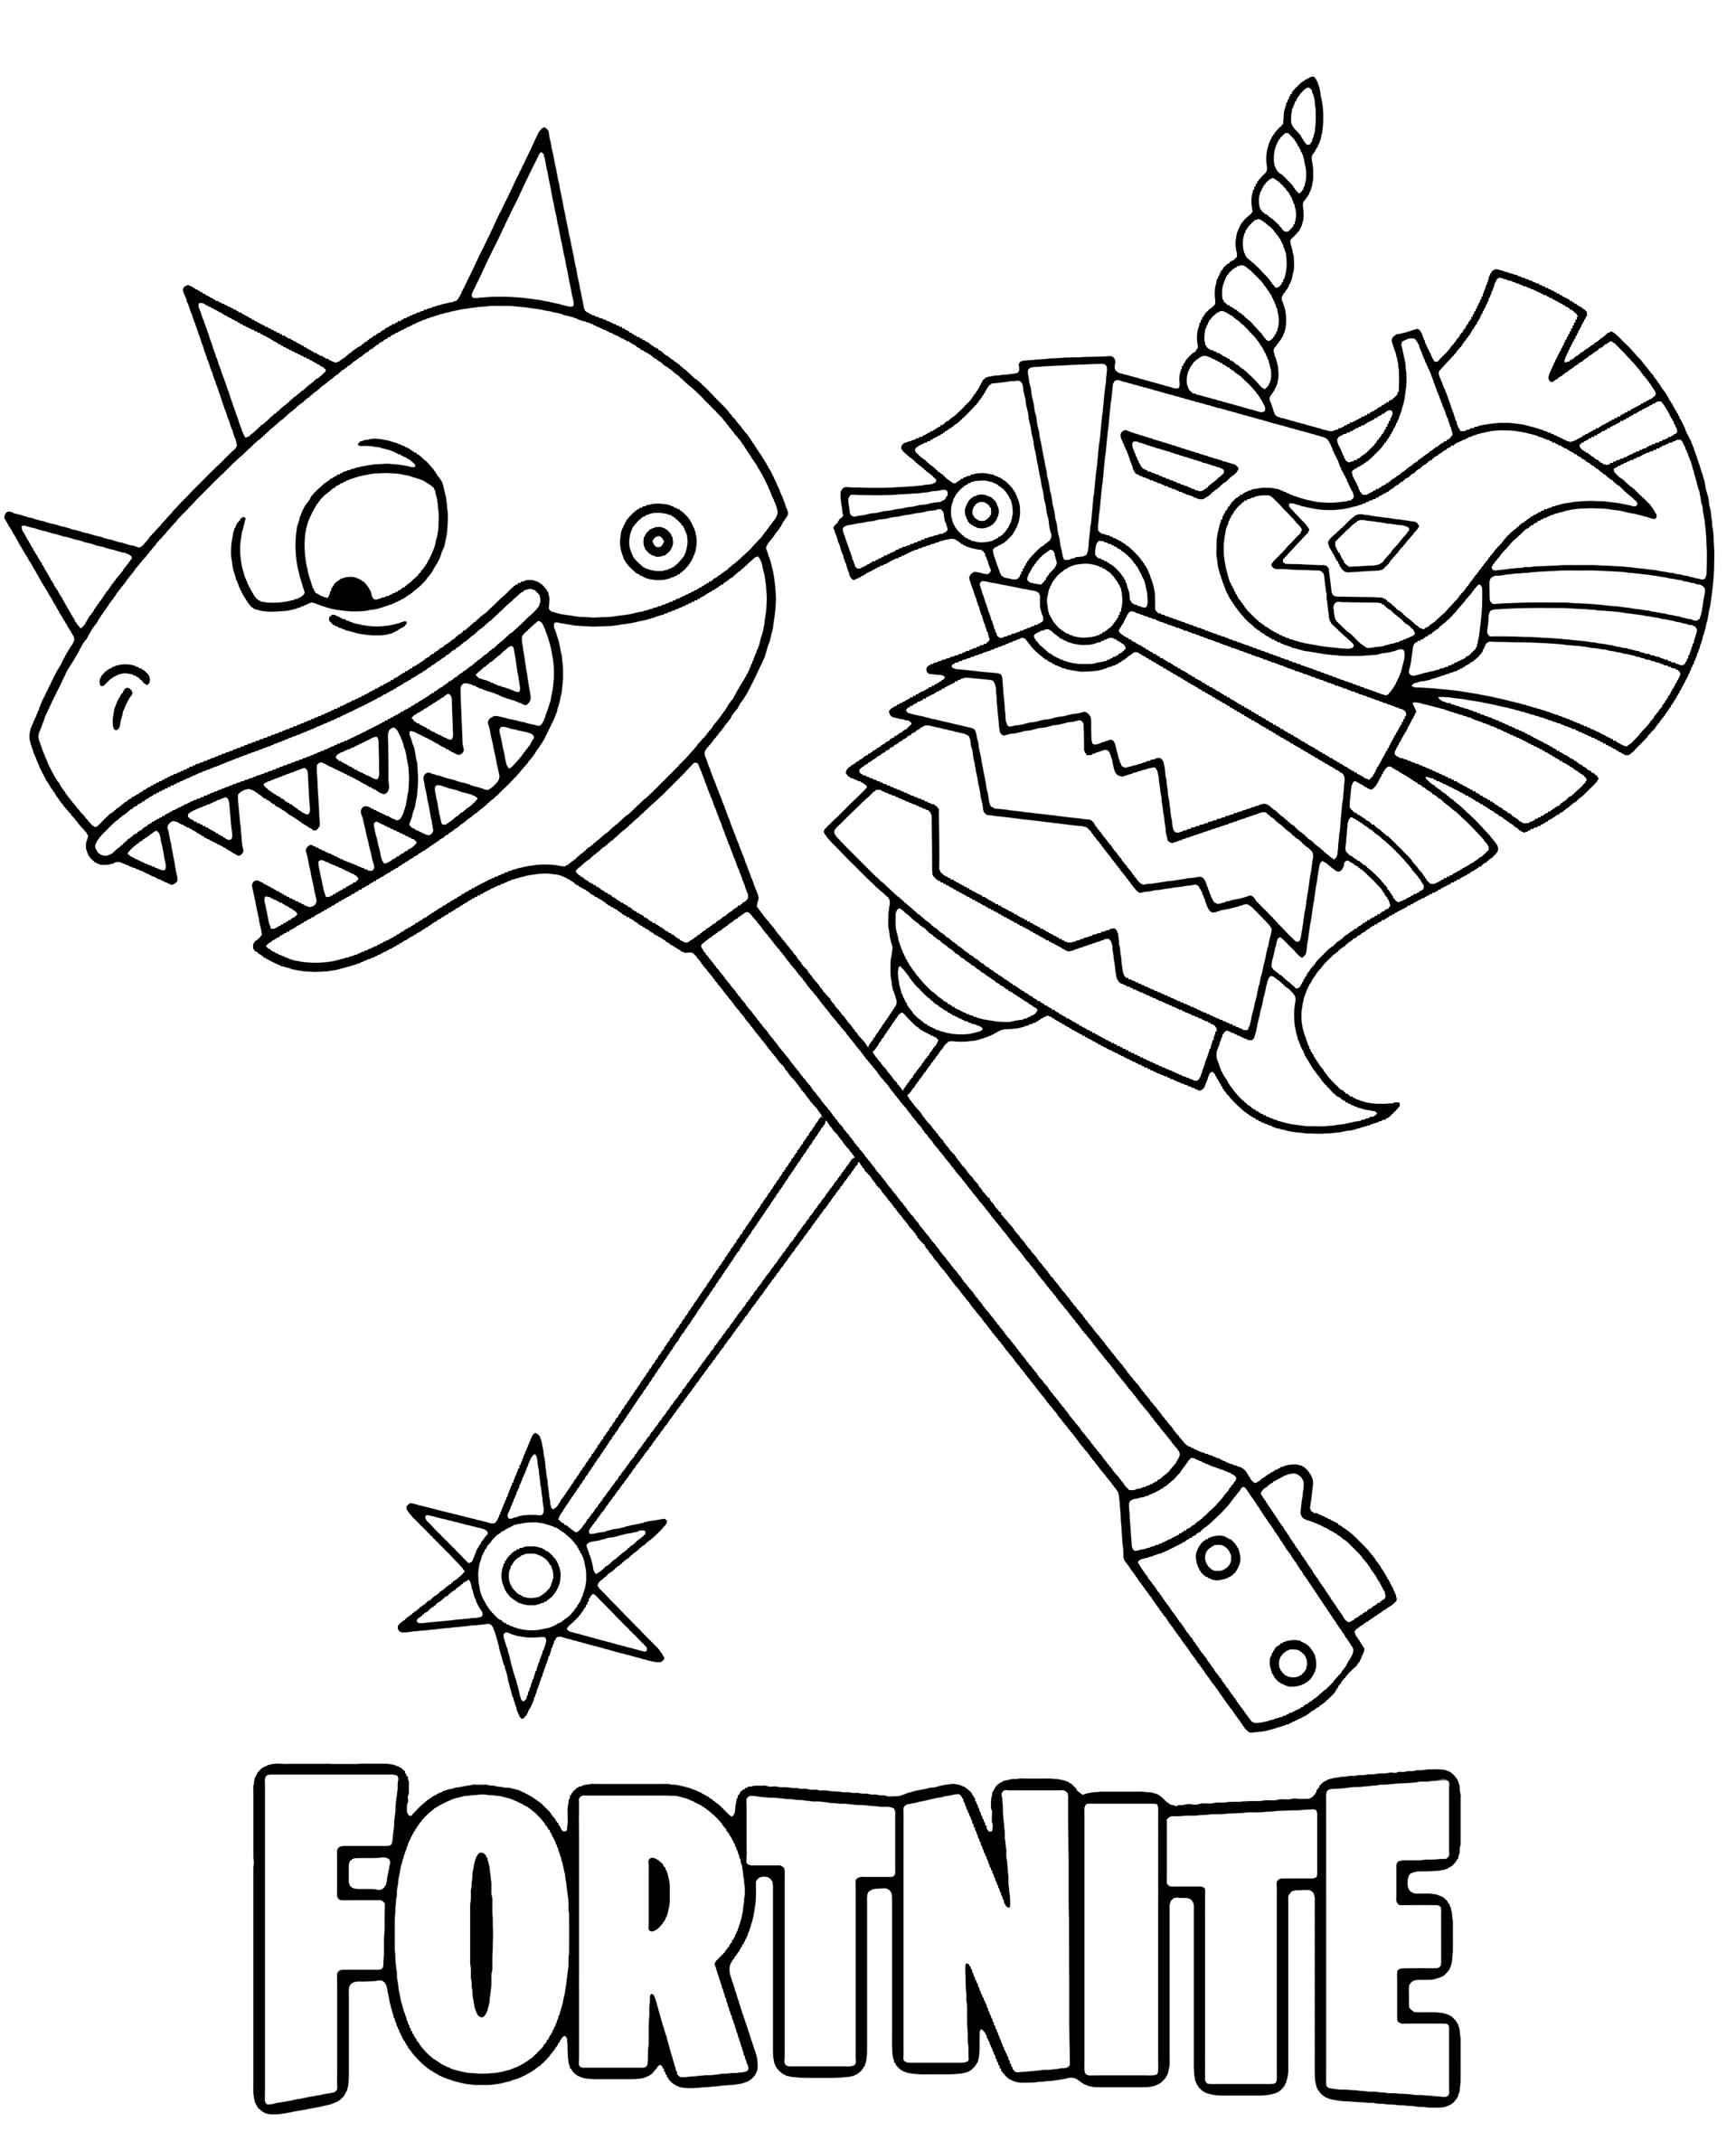 Coloring Sheet Cool Weapon From The Game Fortnite